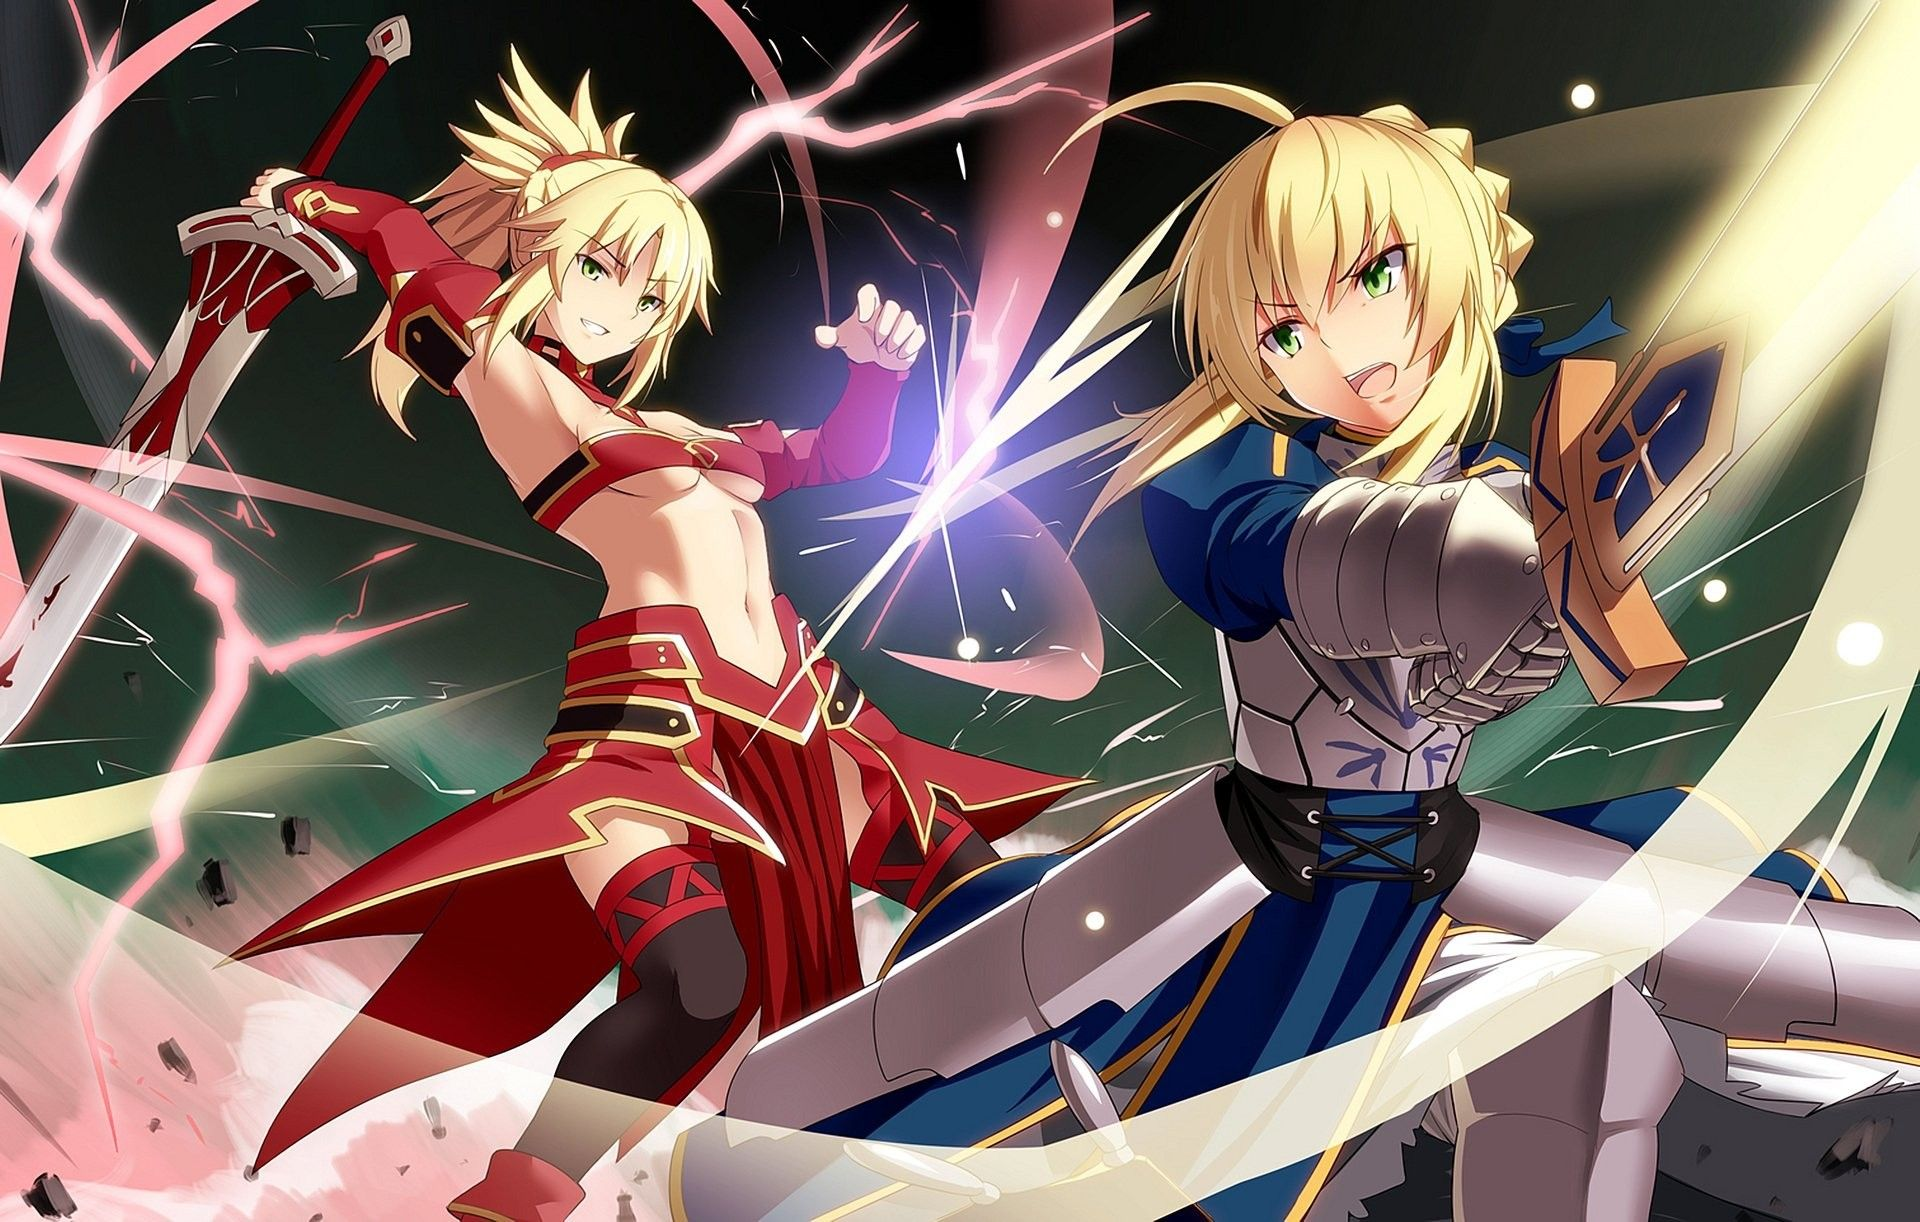 Pin by Cristal on Fate Anime Fate stay night, Fate, Anime